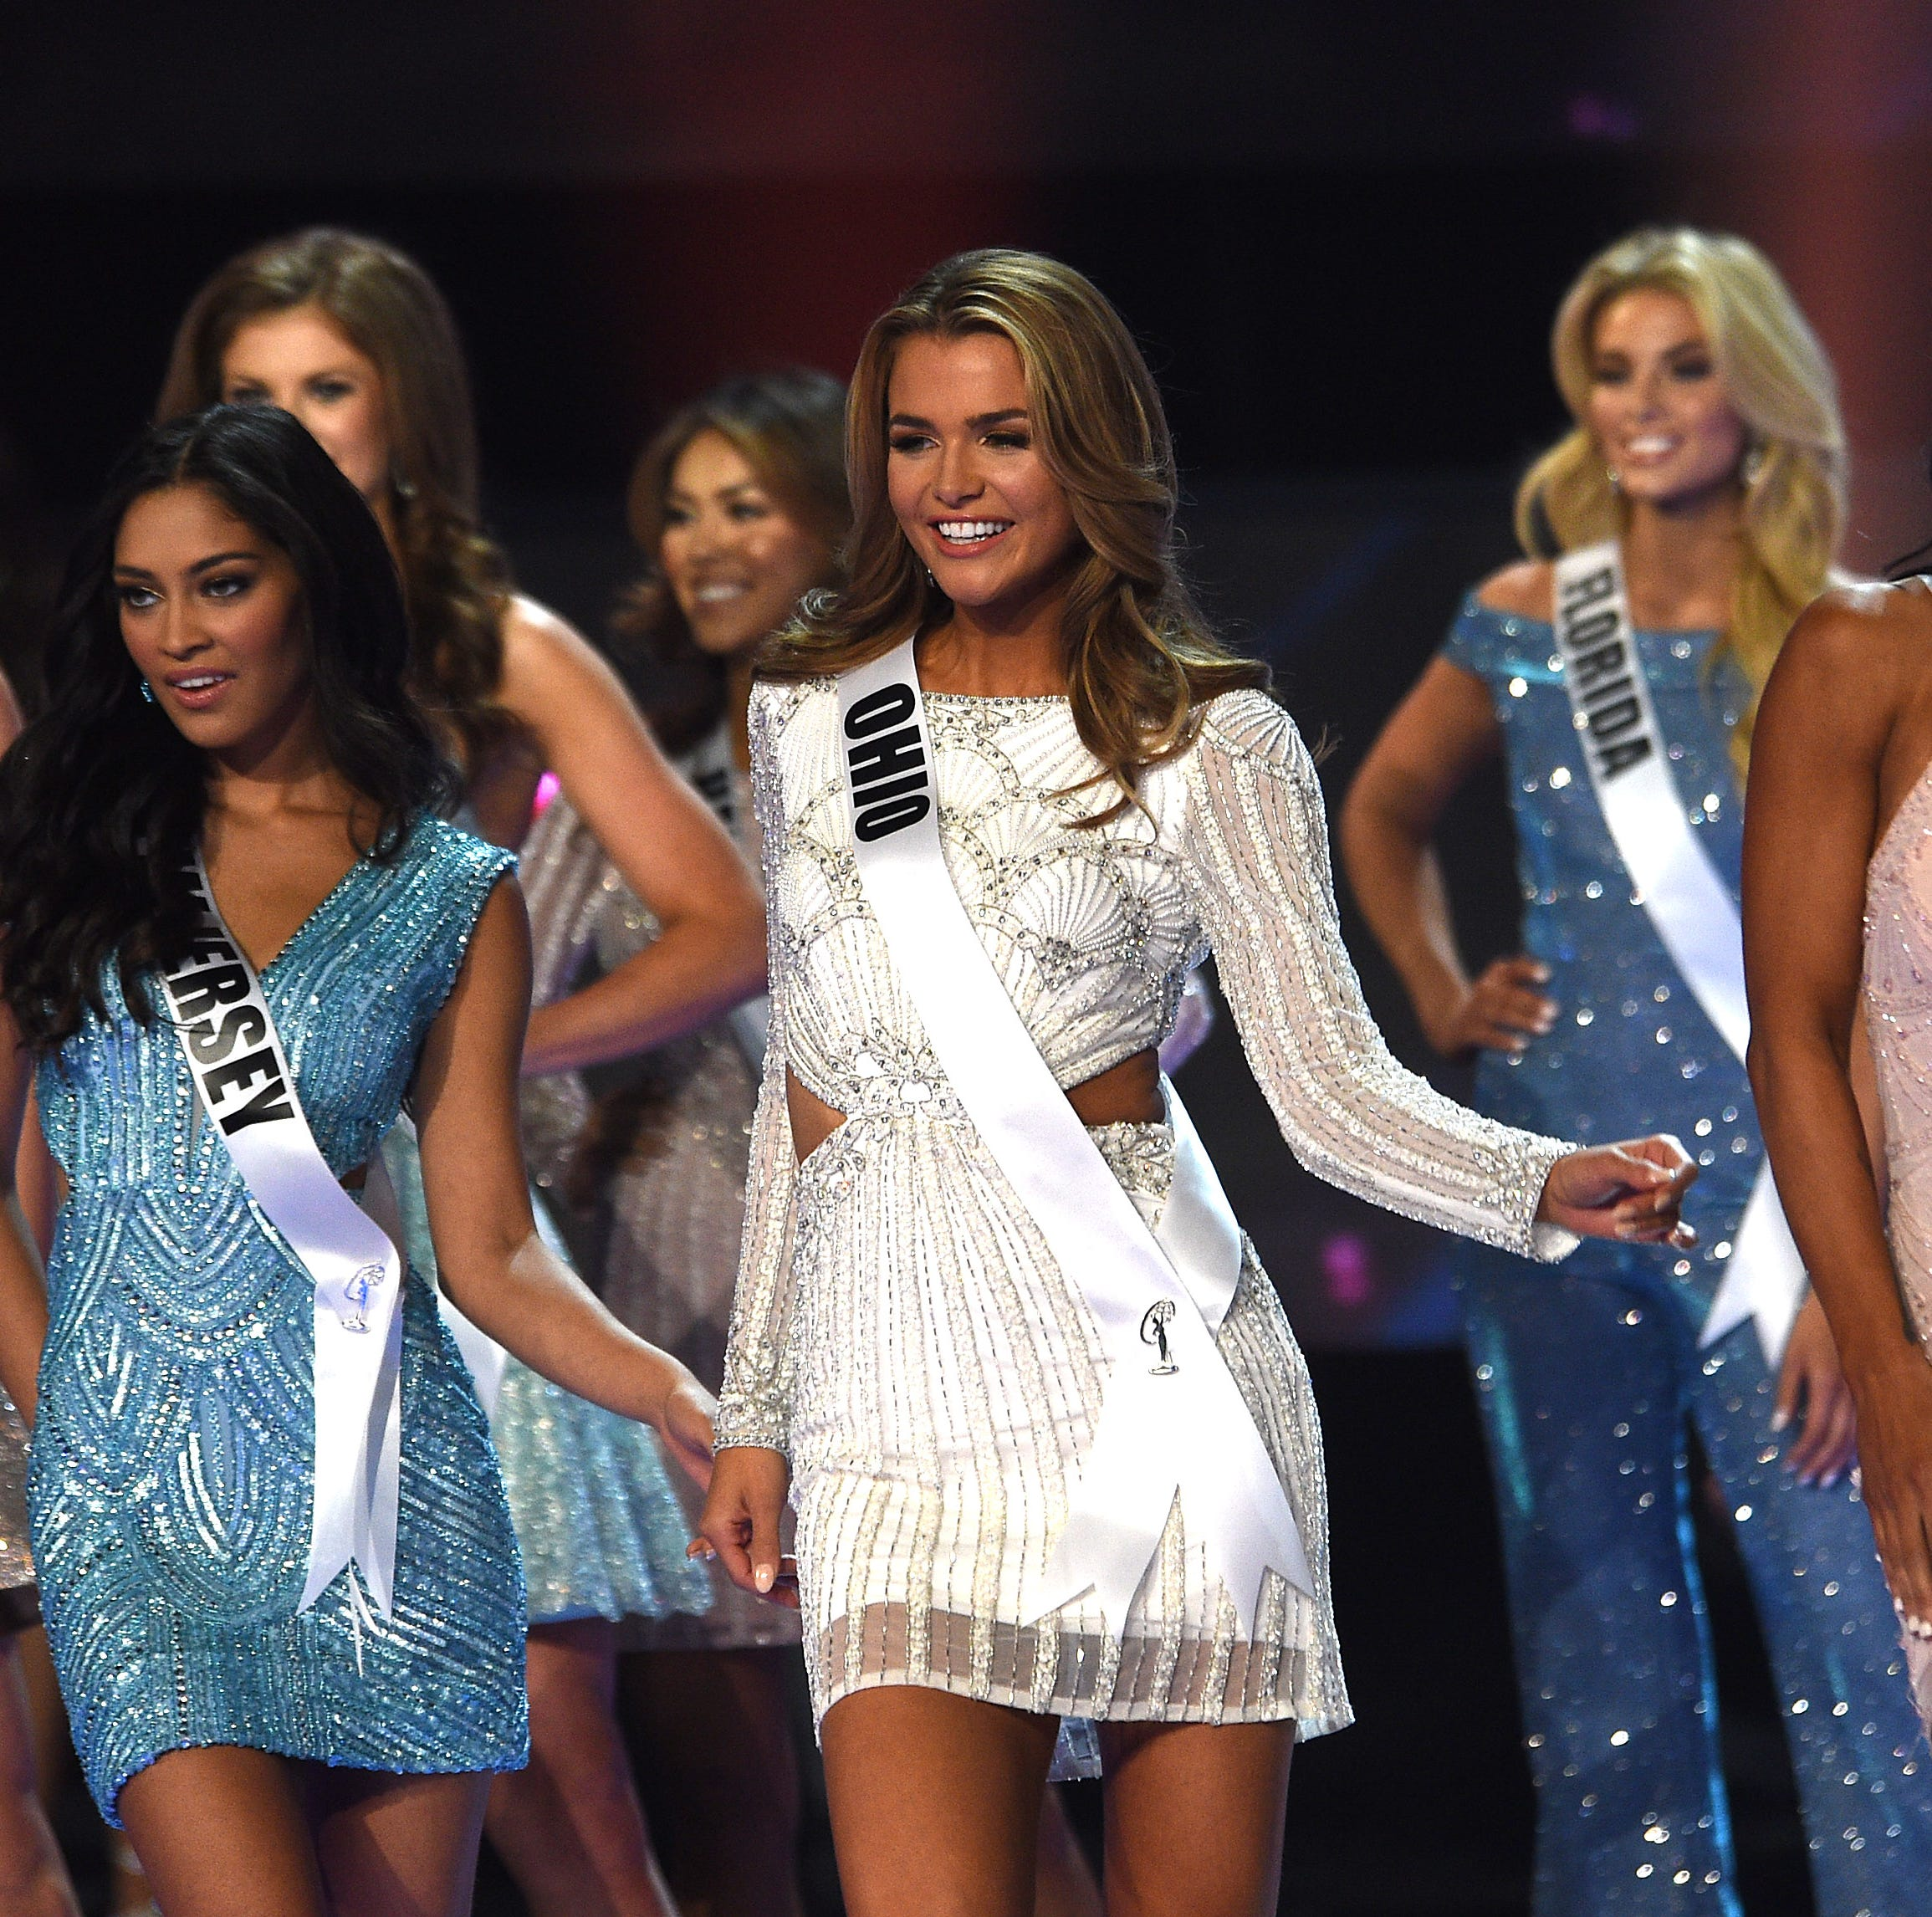 50 states, 51 contestants: Why are there 51 Miss USA Contestants?